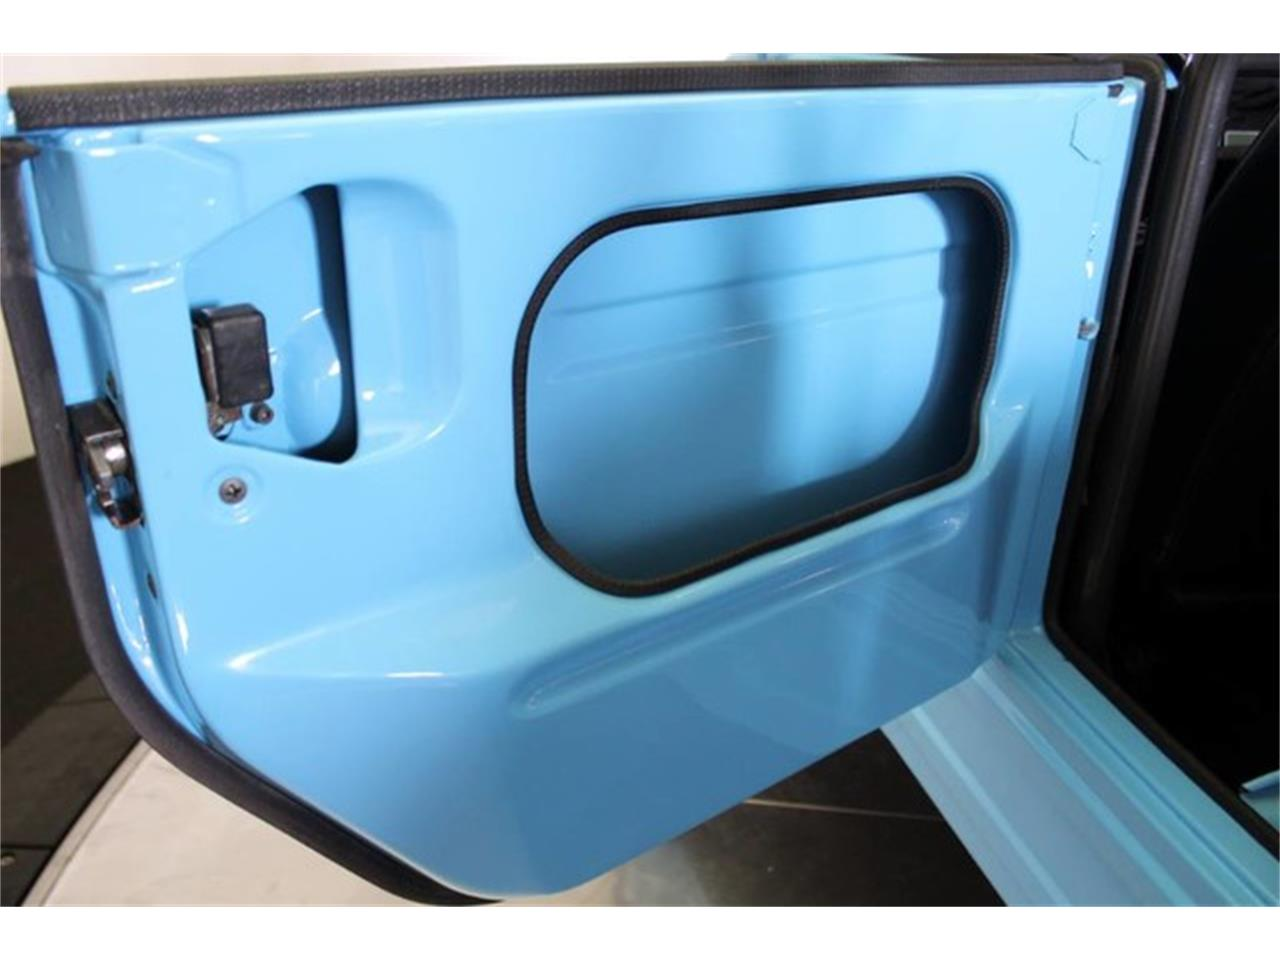 1973 Volkswagen Thing (CC-1232243) for sale in Anaheim, California